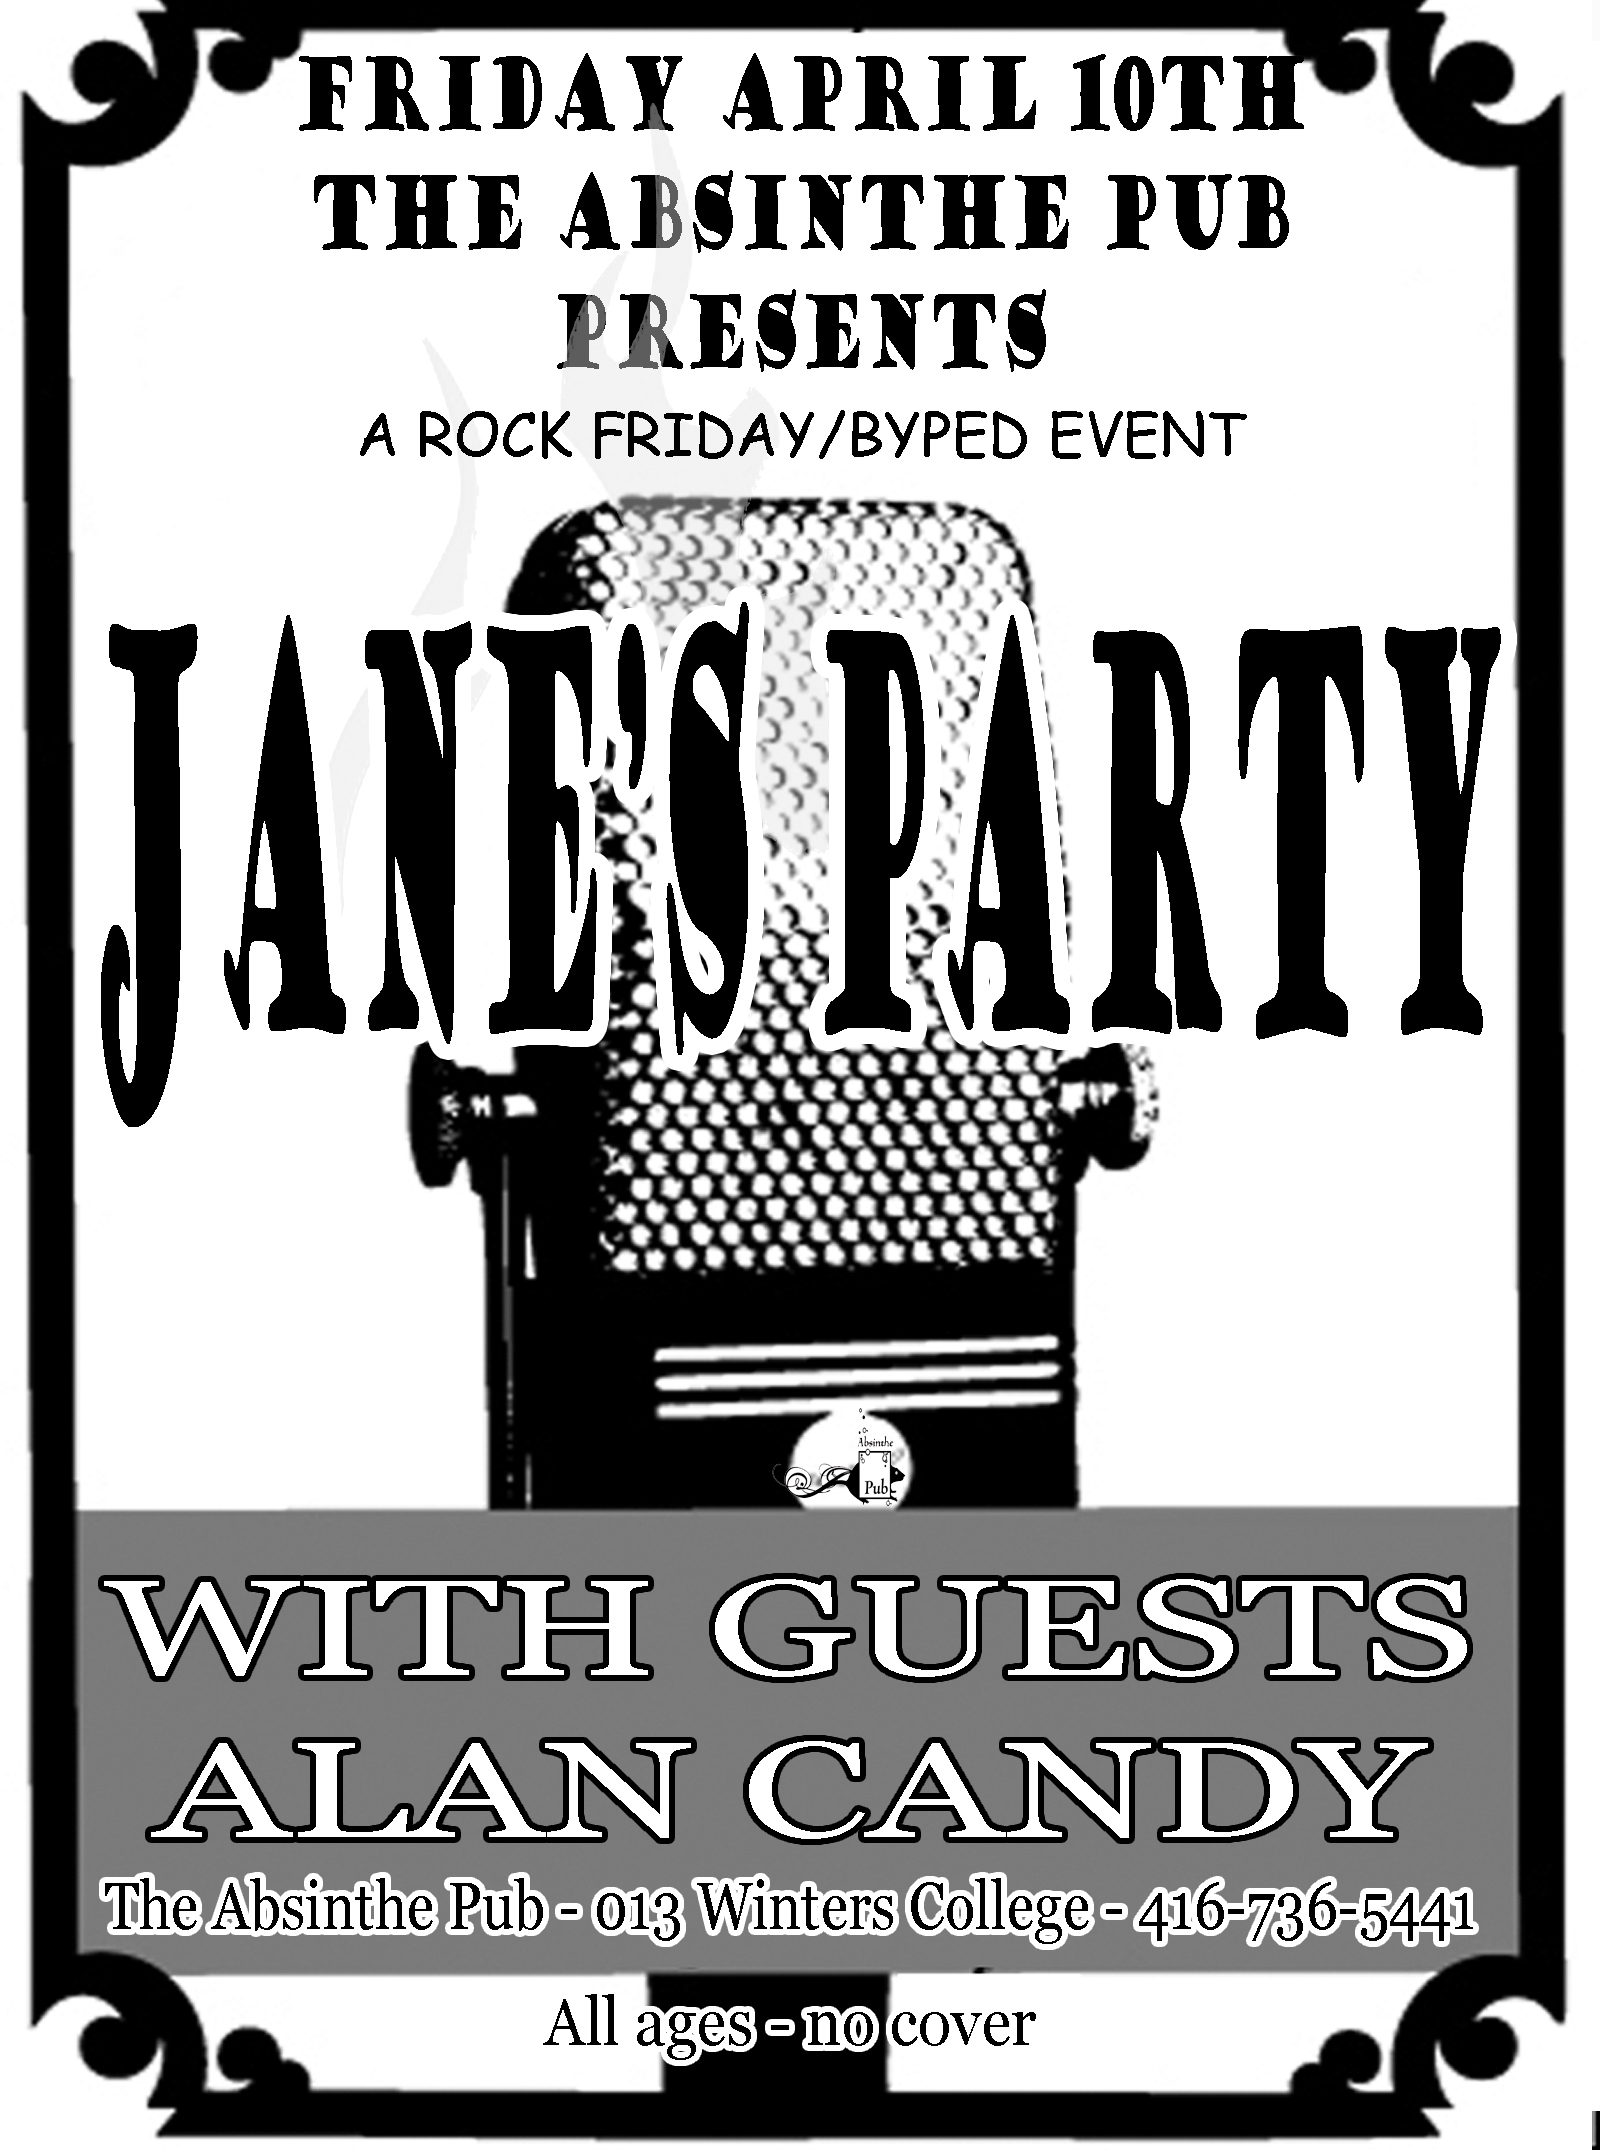 JANES PARTY.ALAN CANDY POSTER.jpg